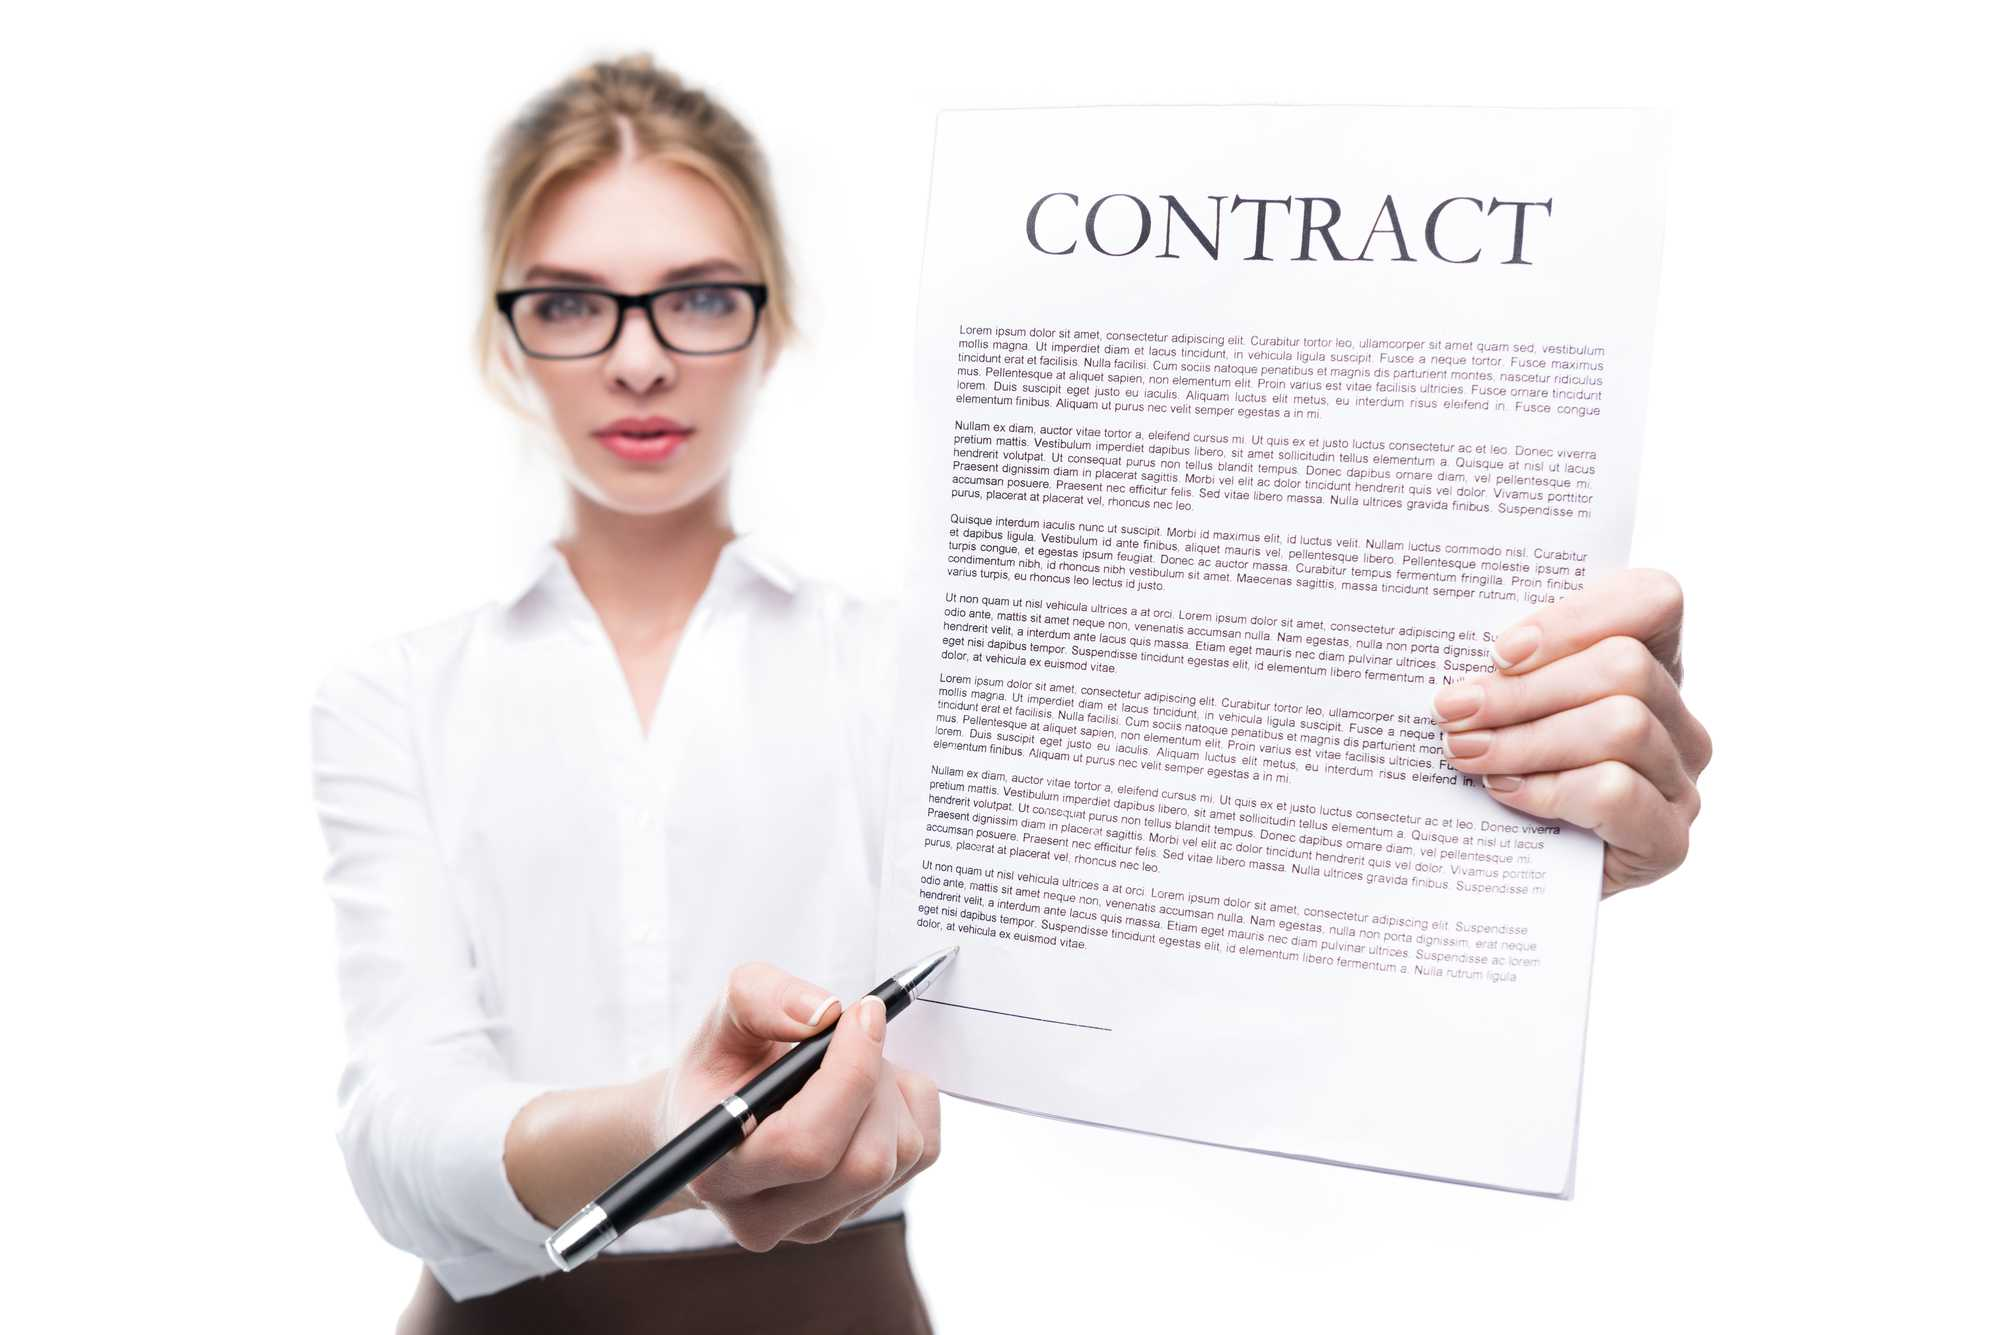 arbitration mediation adr contract clauses